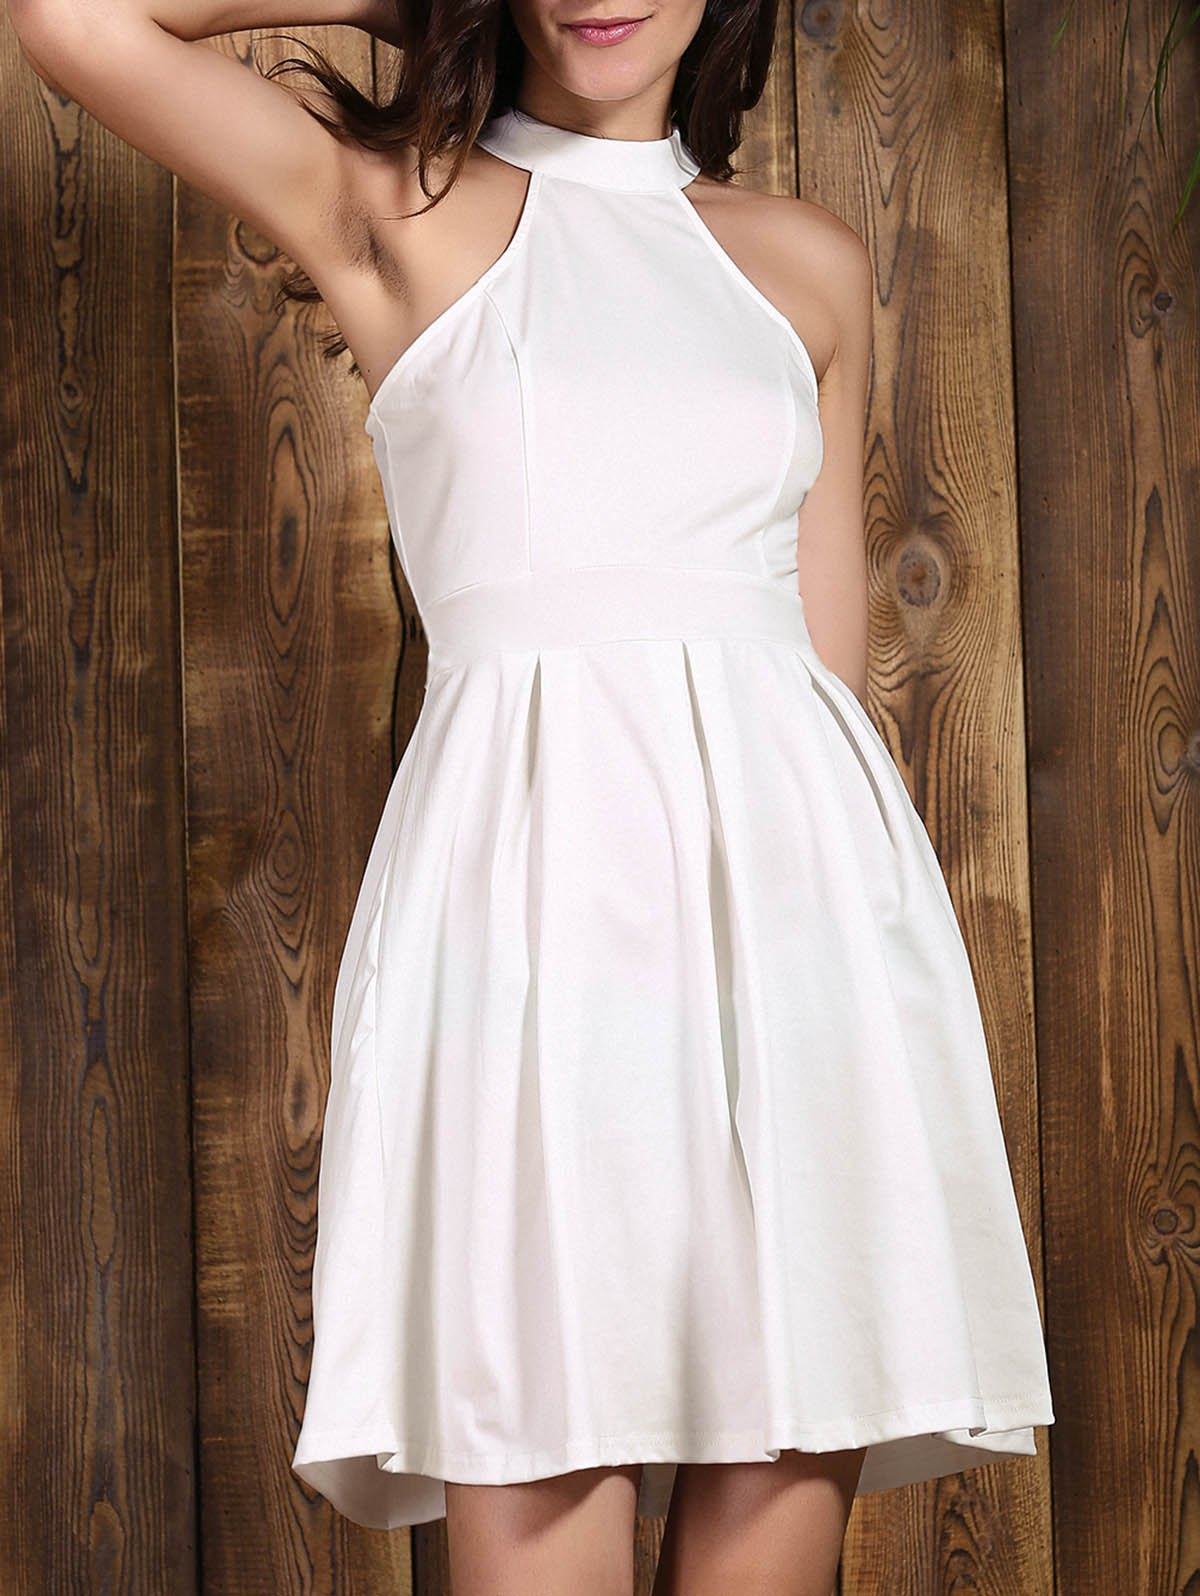 Chic Sleeveless Jewel Neck Cut Out Solid Color Women's Dress - WHITE XL